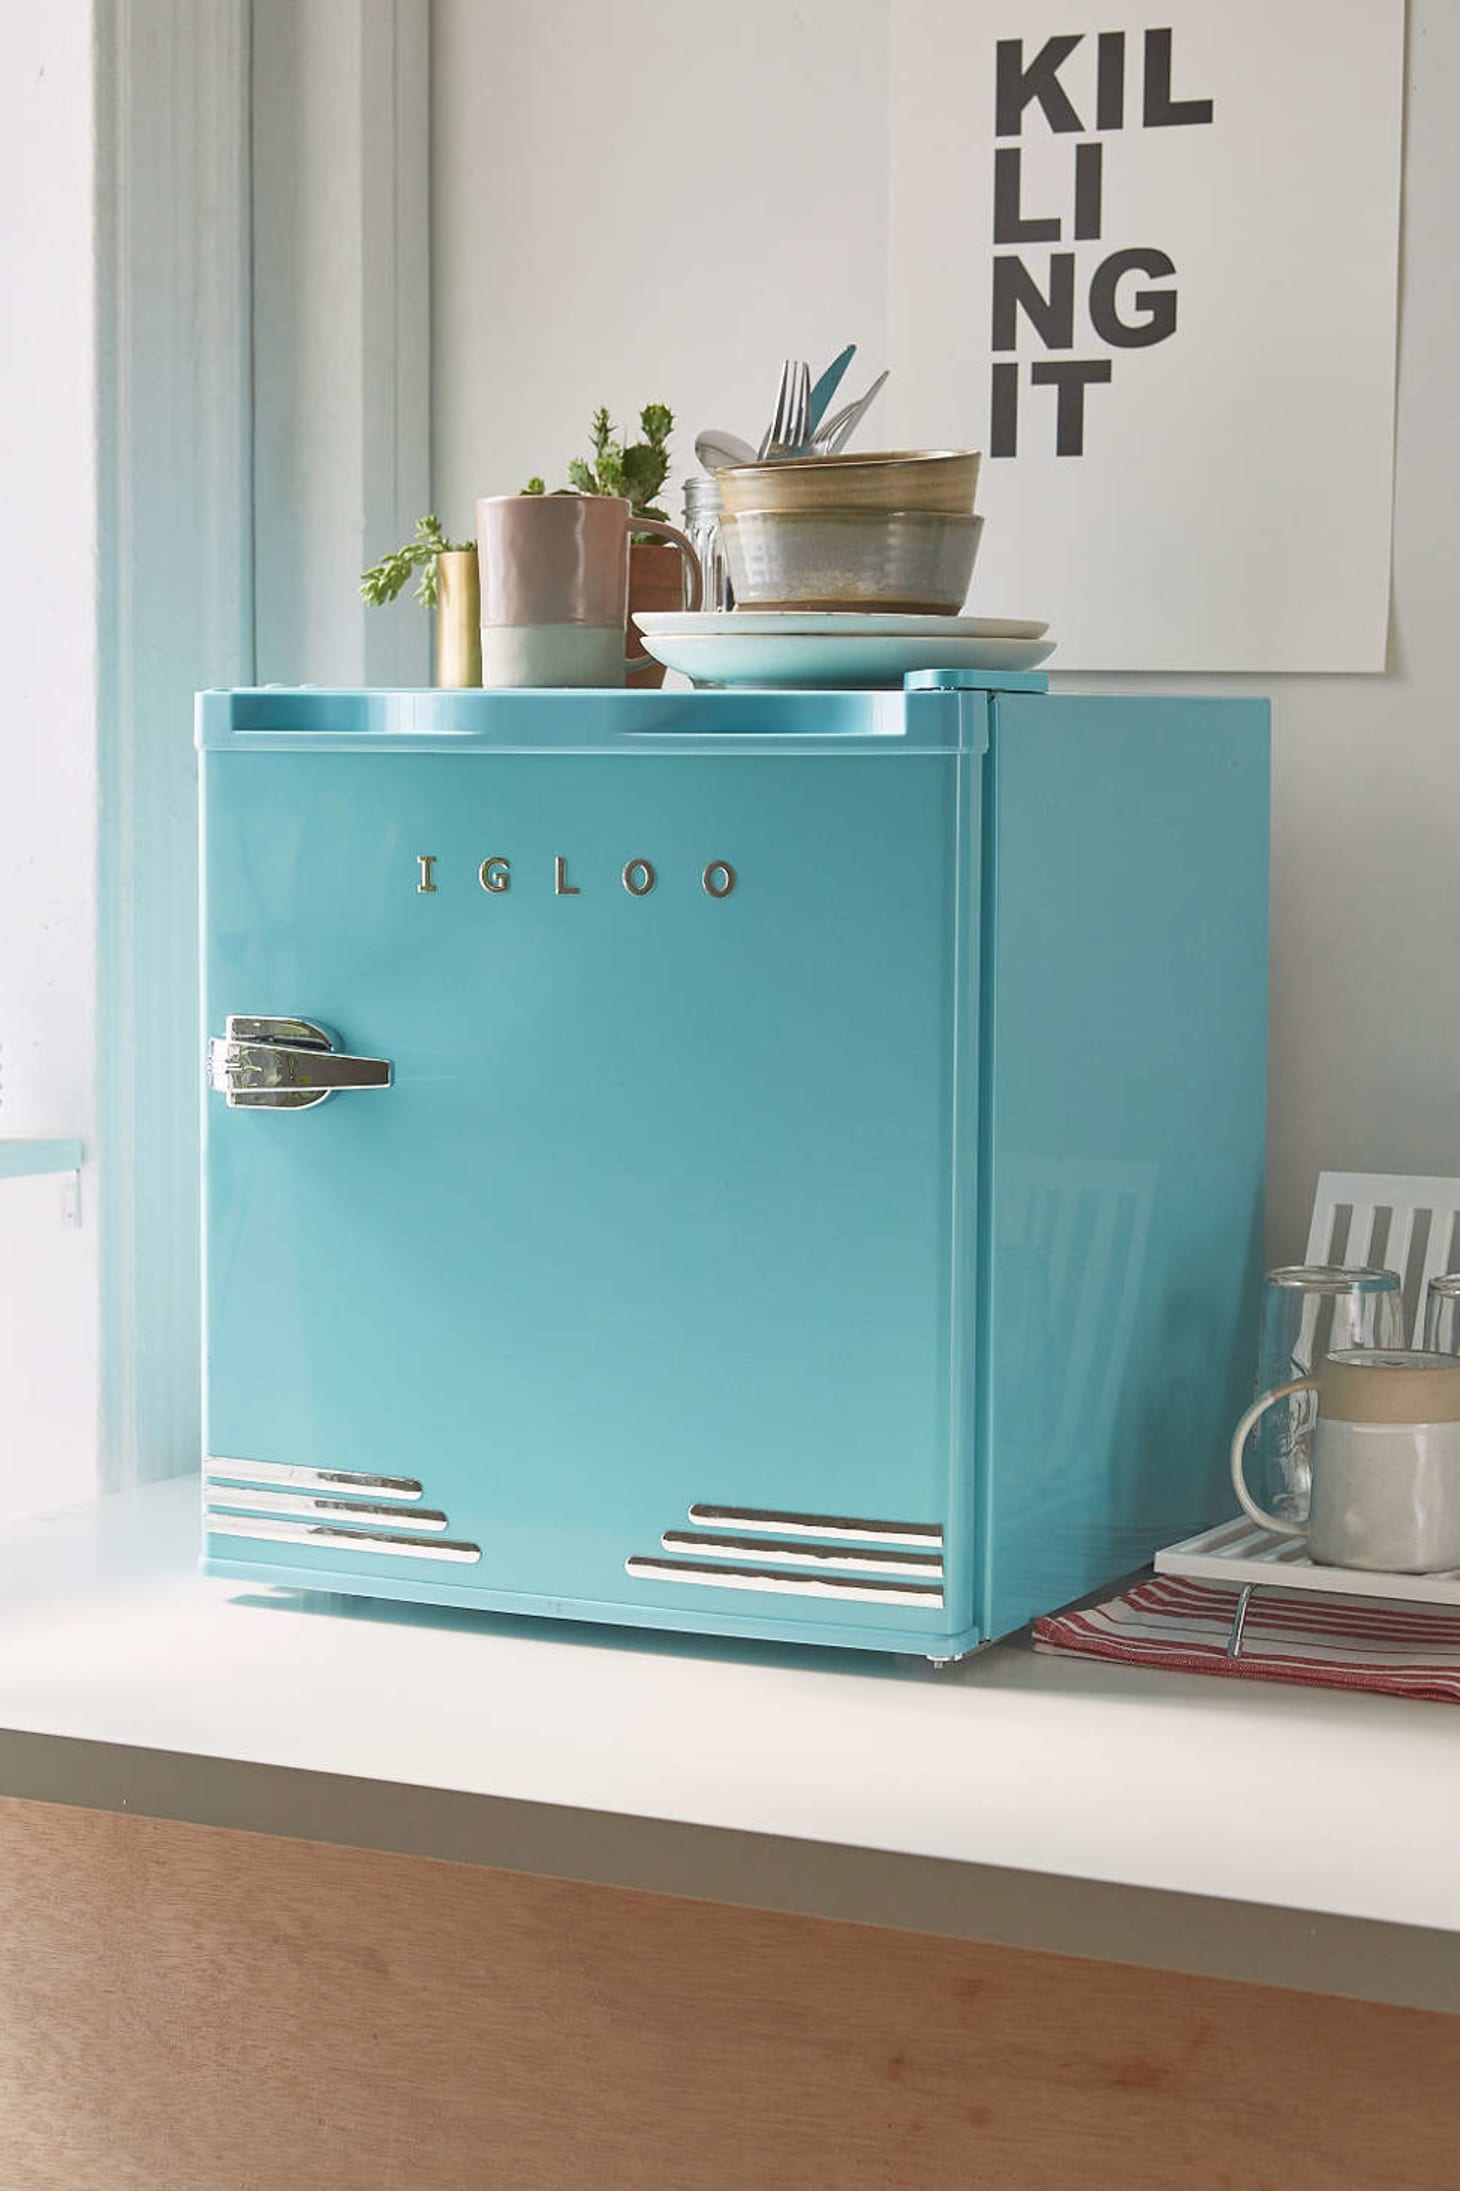 Big Chill, Bright Colors: 7 Refrigerators in Eye-Popping